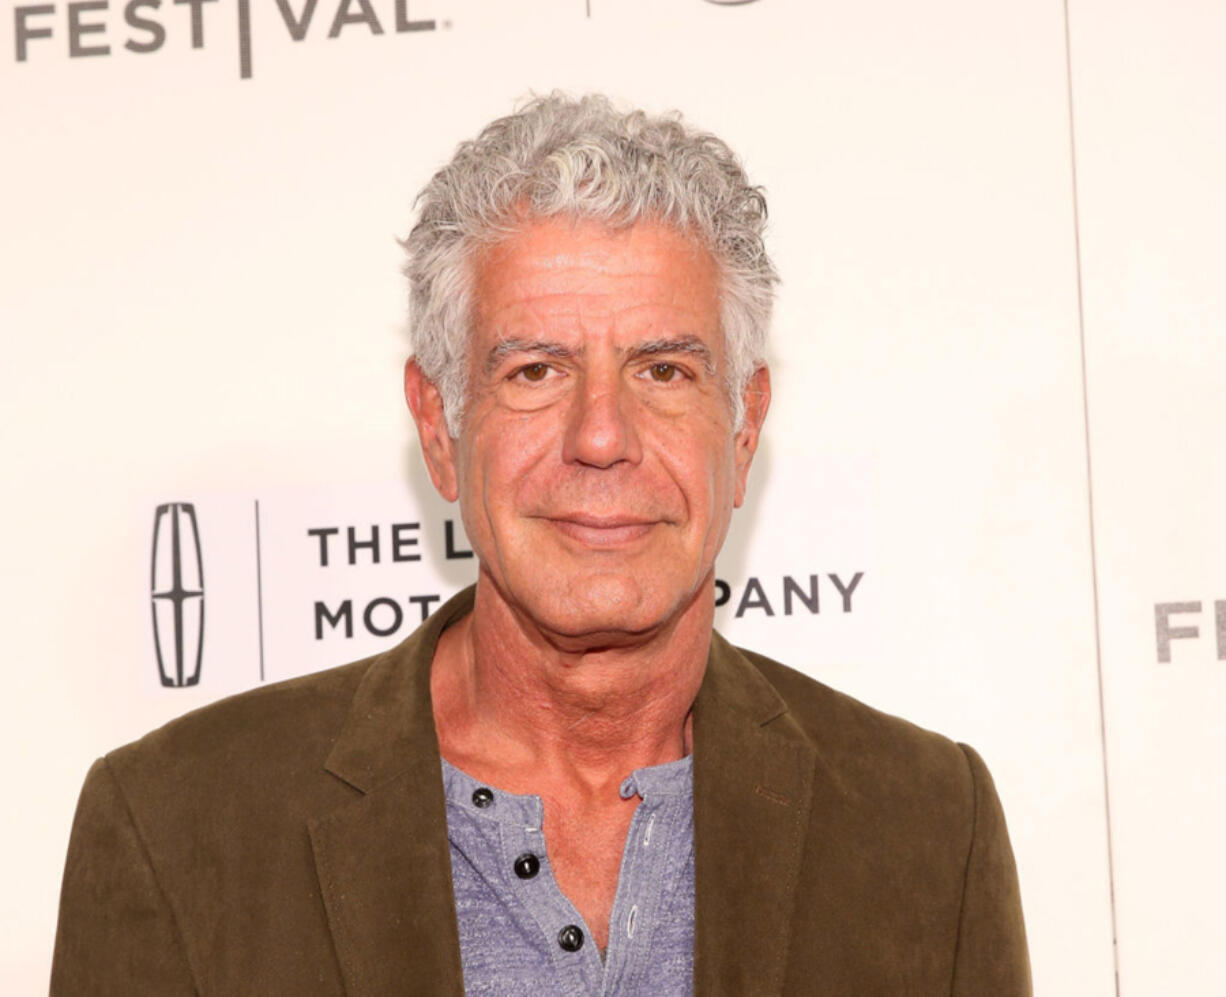 """Anthony Bourdain attends """"WASTED! The Story of Food Waste"""" Premiere during 2017 Tribeca Film Festival at BMCC Tribeca PAC on April 22, 2017 in New York City."""